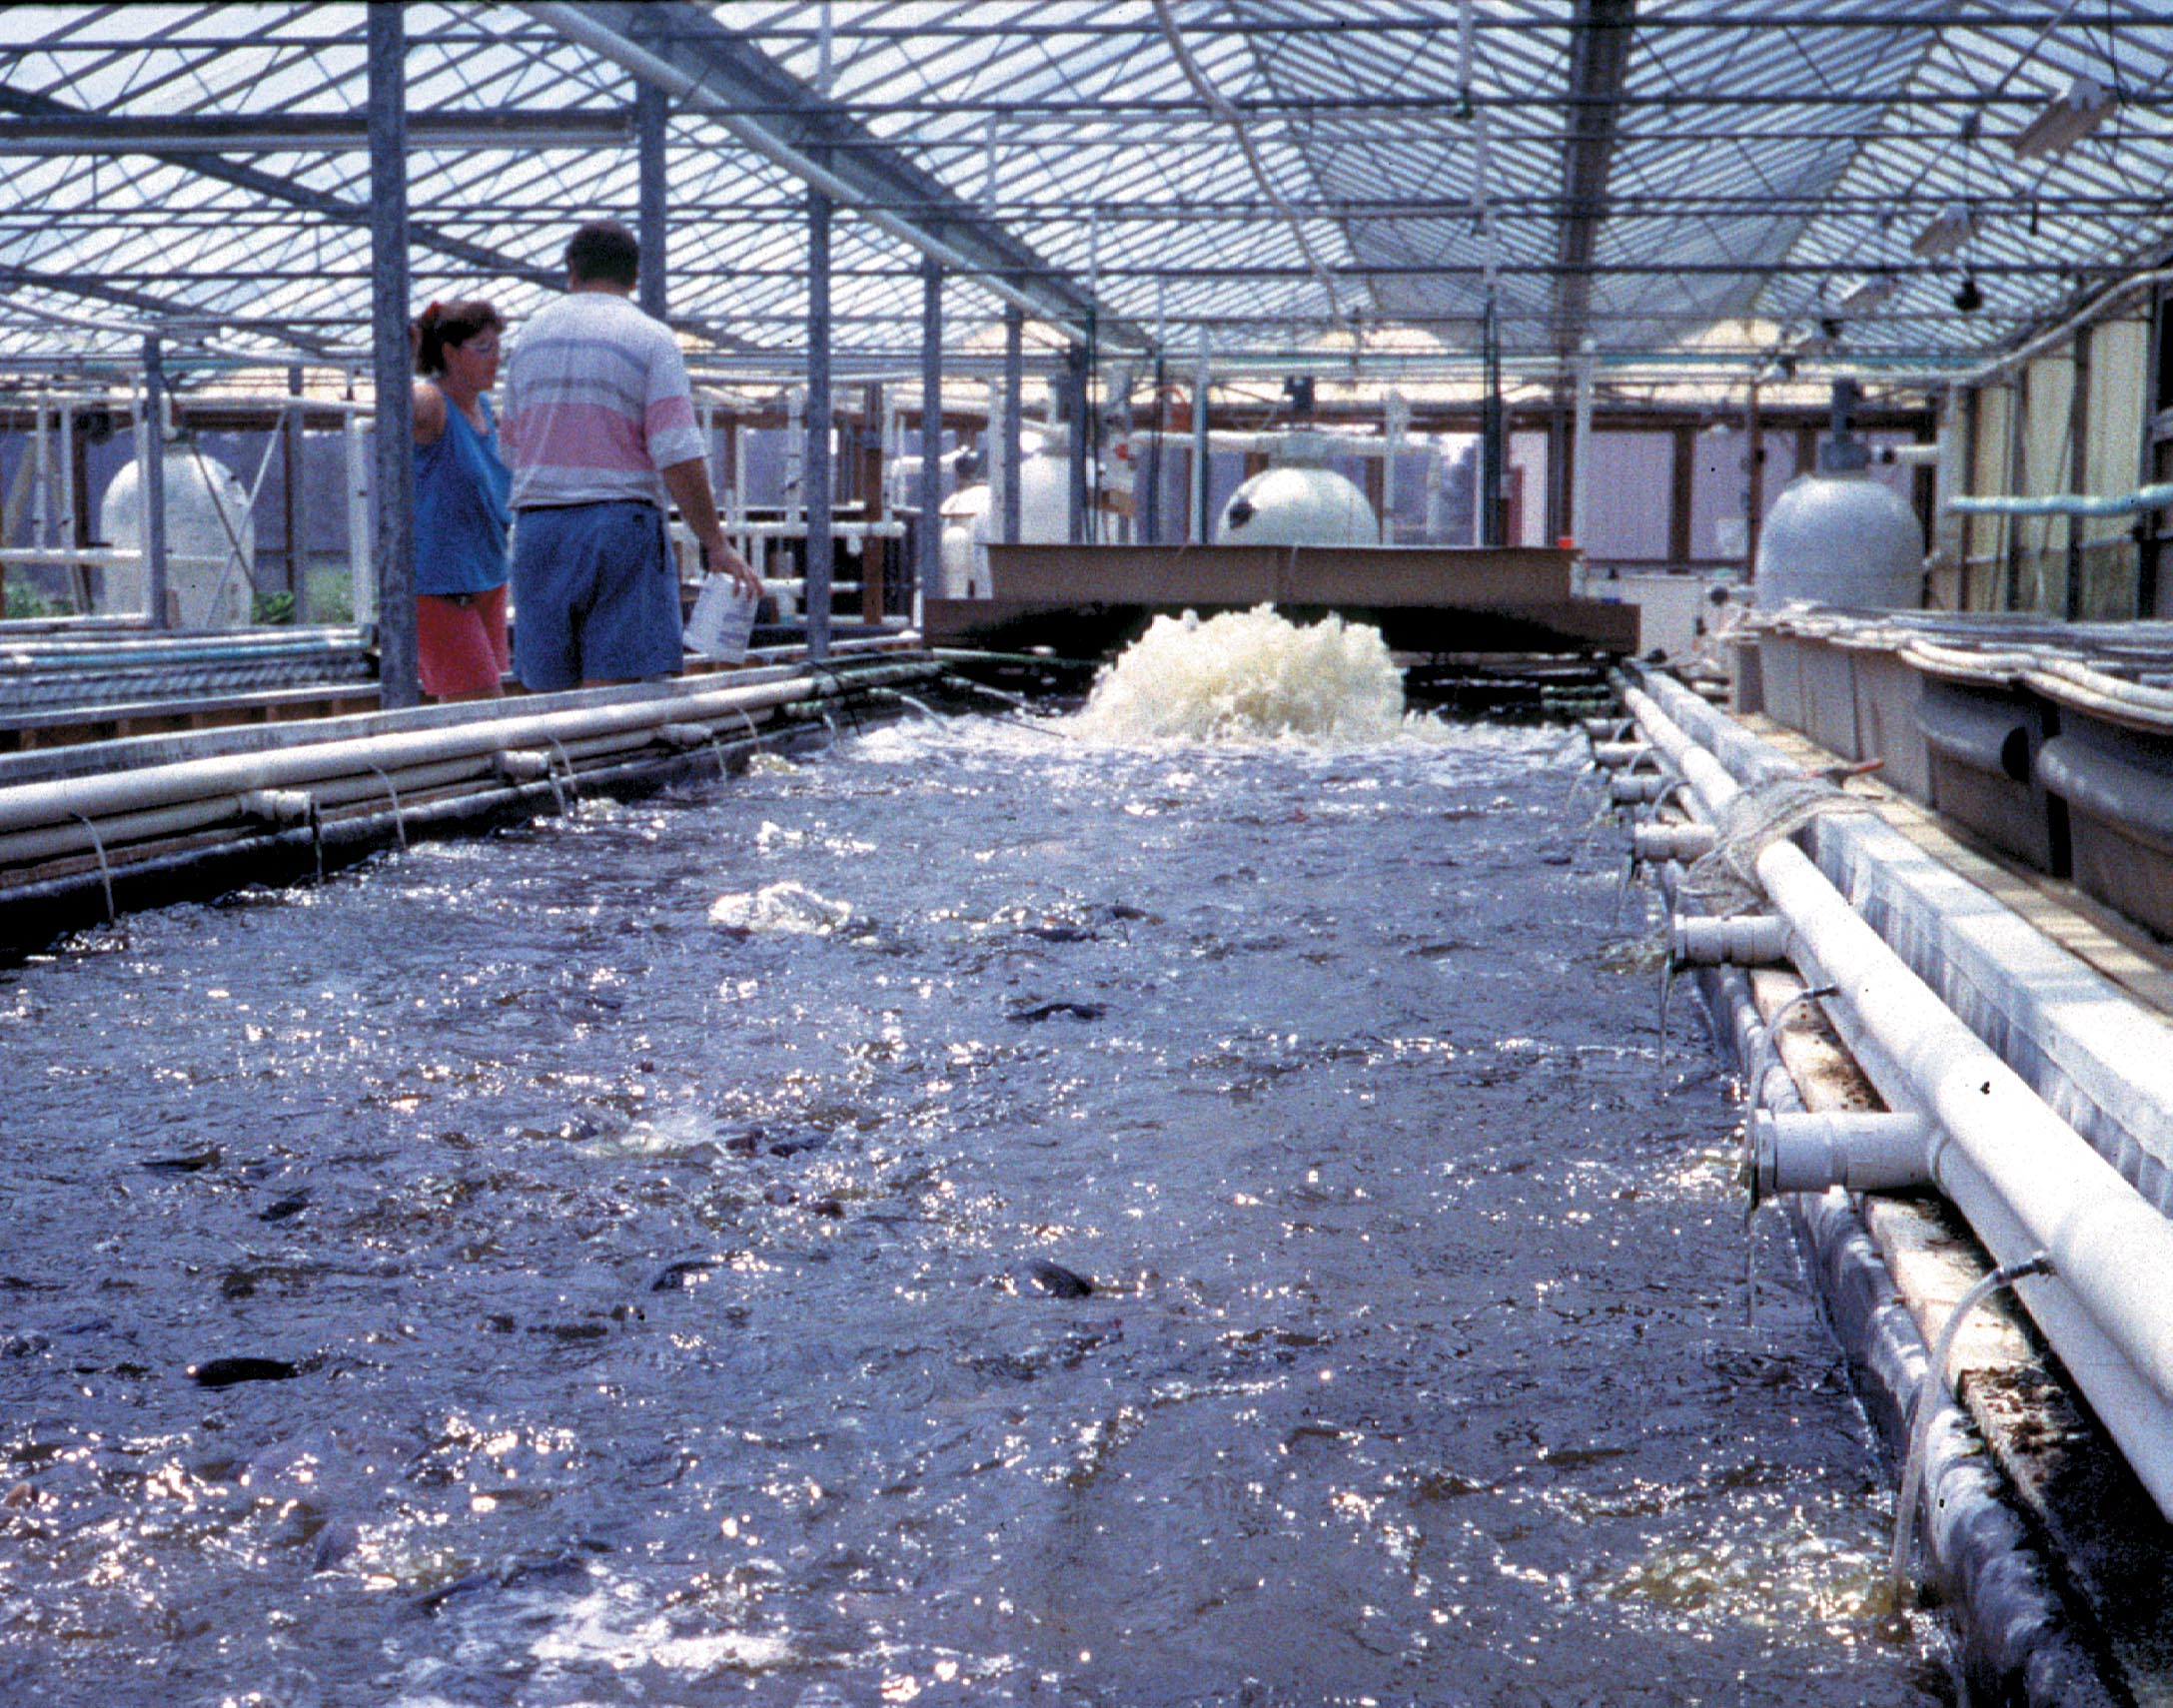 New Disease Problems Continue to Arise in Aquaculture Industry